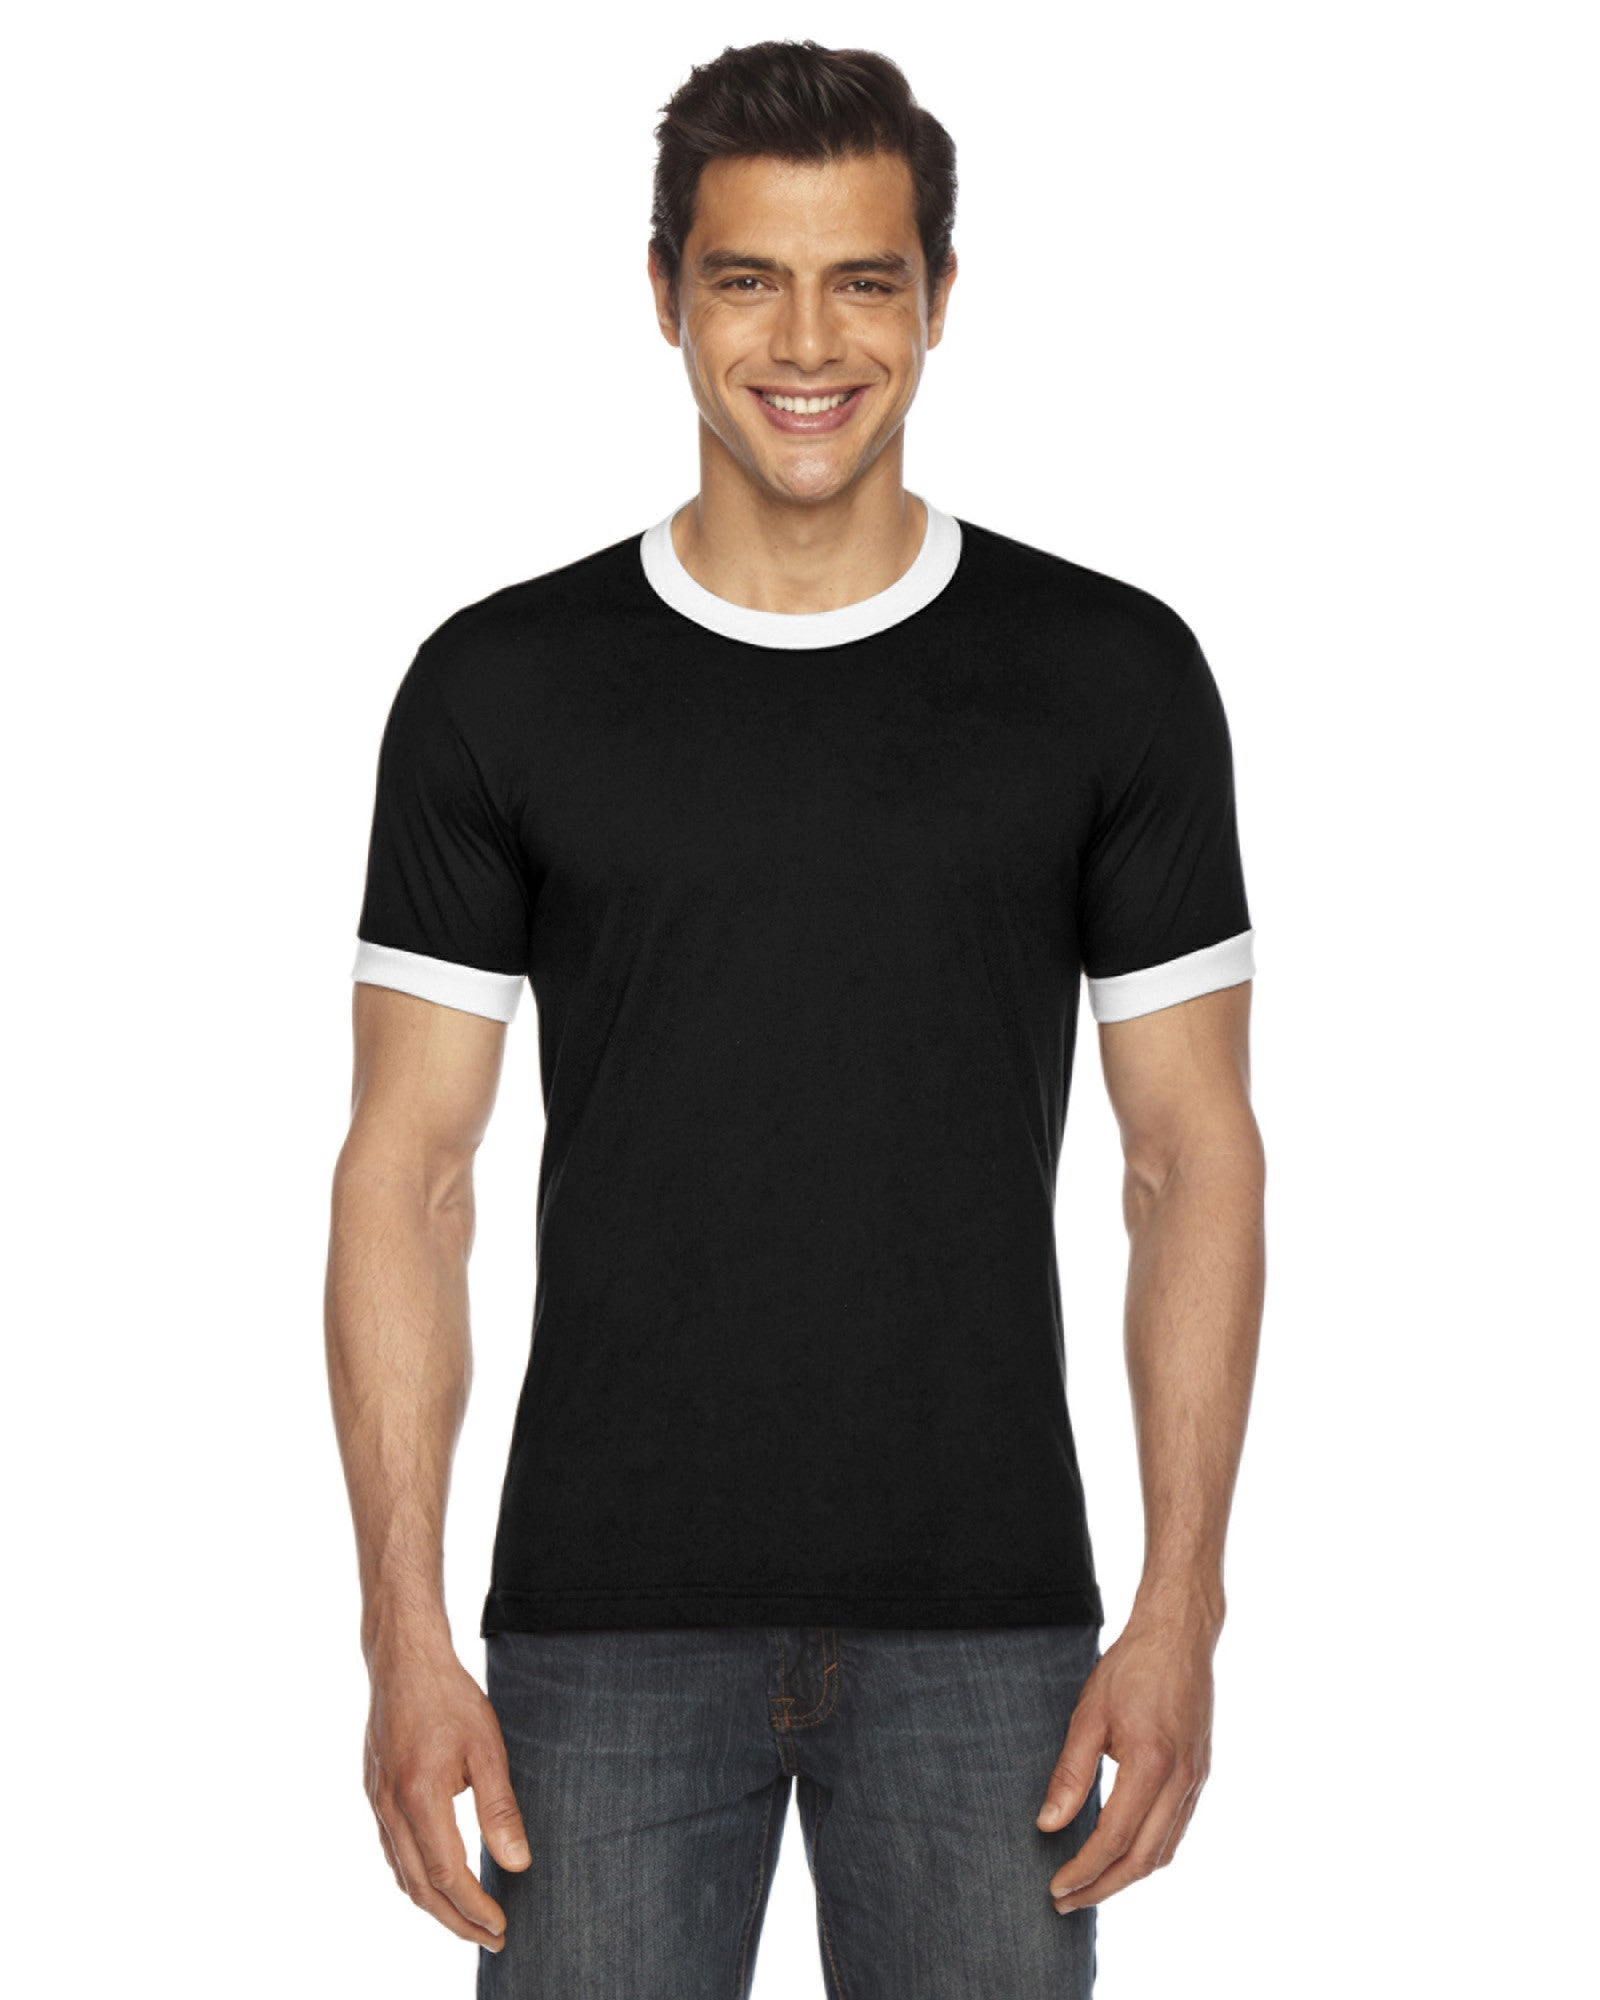 American Apparel Unisex Poly-Cotton Short Sleeve Ringer T-Shirt